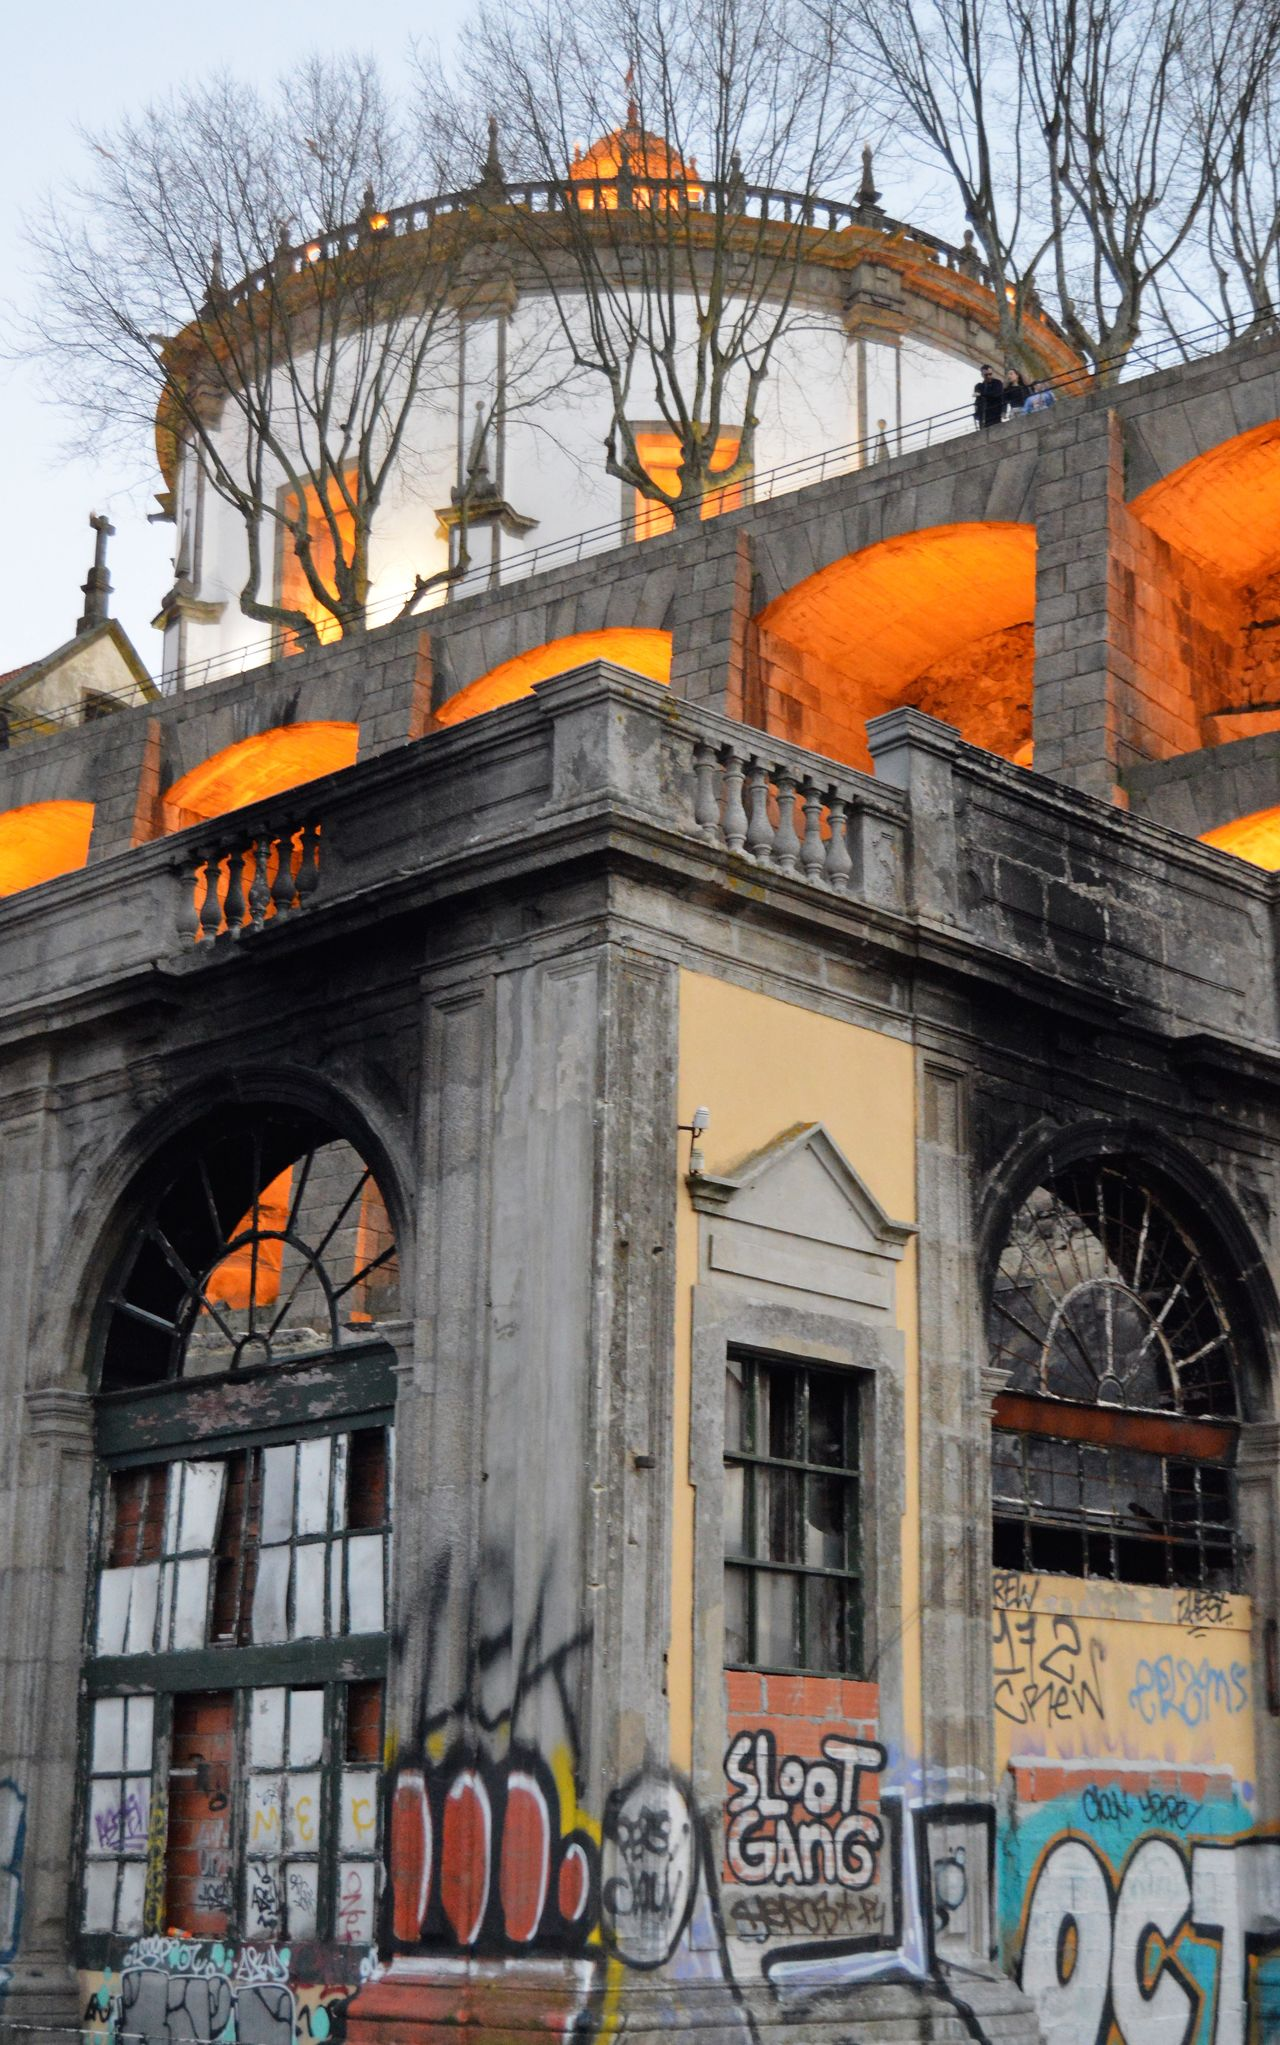 like fire. Abandoned Buildings City Colors Constrast Felloporto Lazysunday Light Morro Nofilter Oporto Fire From My Point Of View Perspective Travel Destinations Portuguese Streetphotography Oporto, Portugal Building Exterior Shadows & Lights Travel Destination Oportolovers Portugal Architecture Lights Details Streetphotography